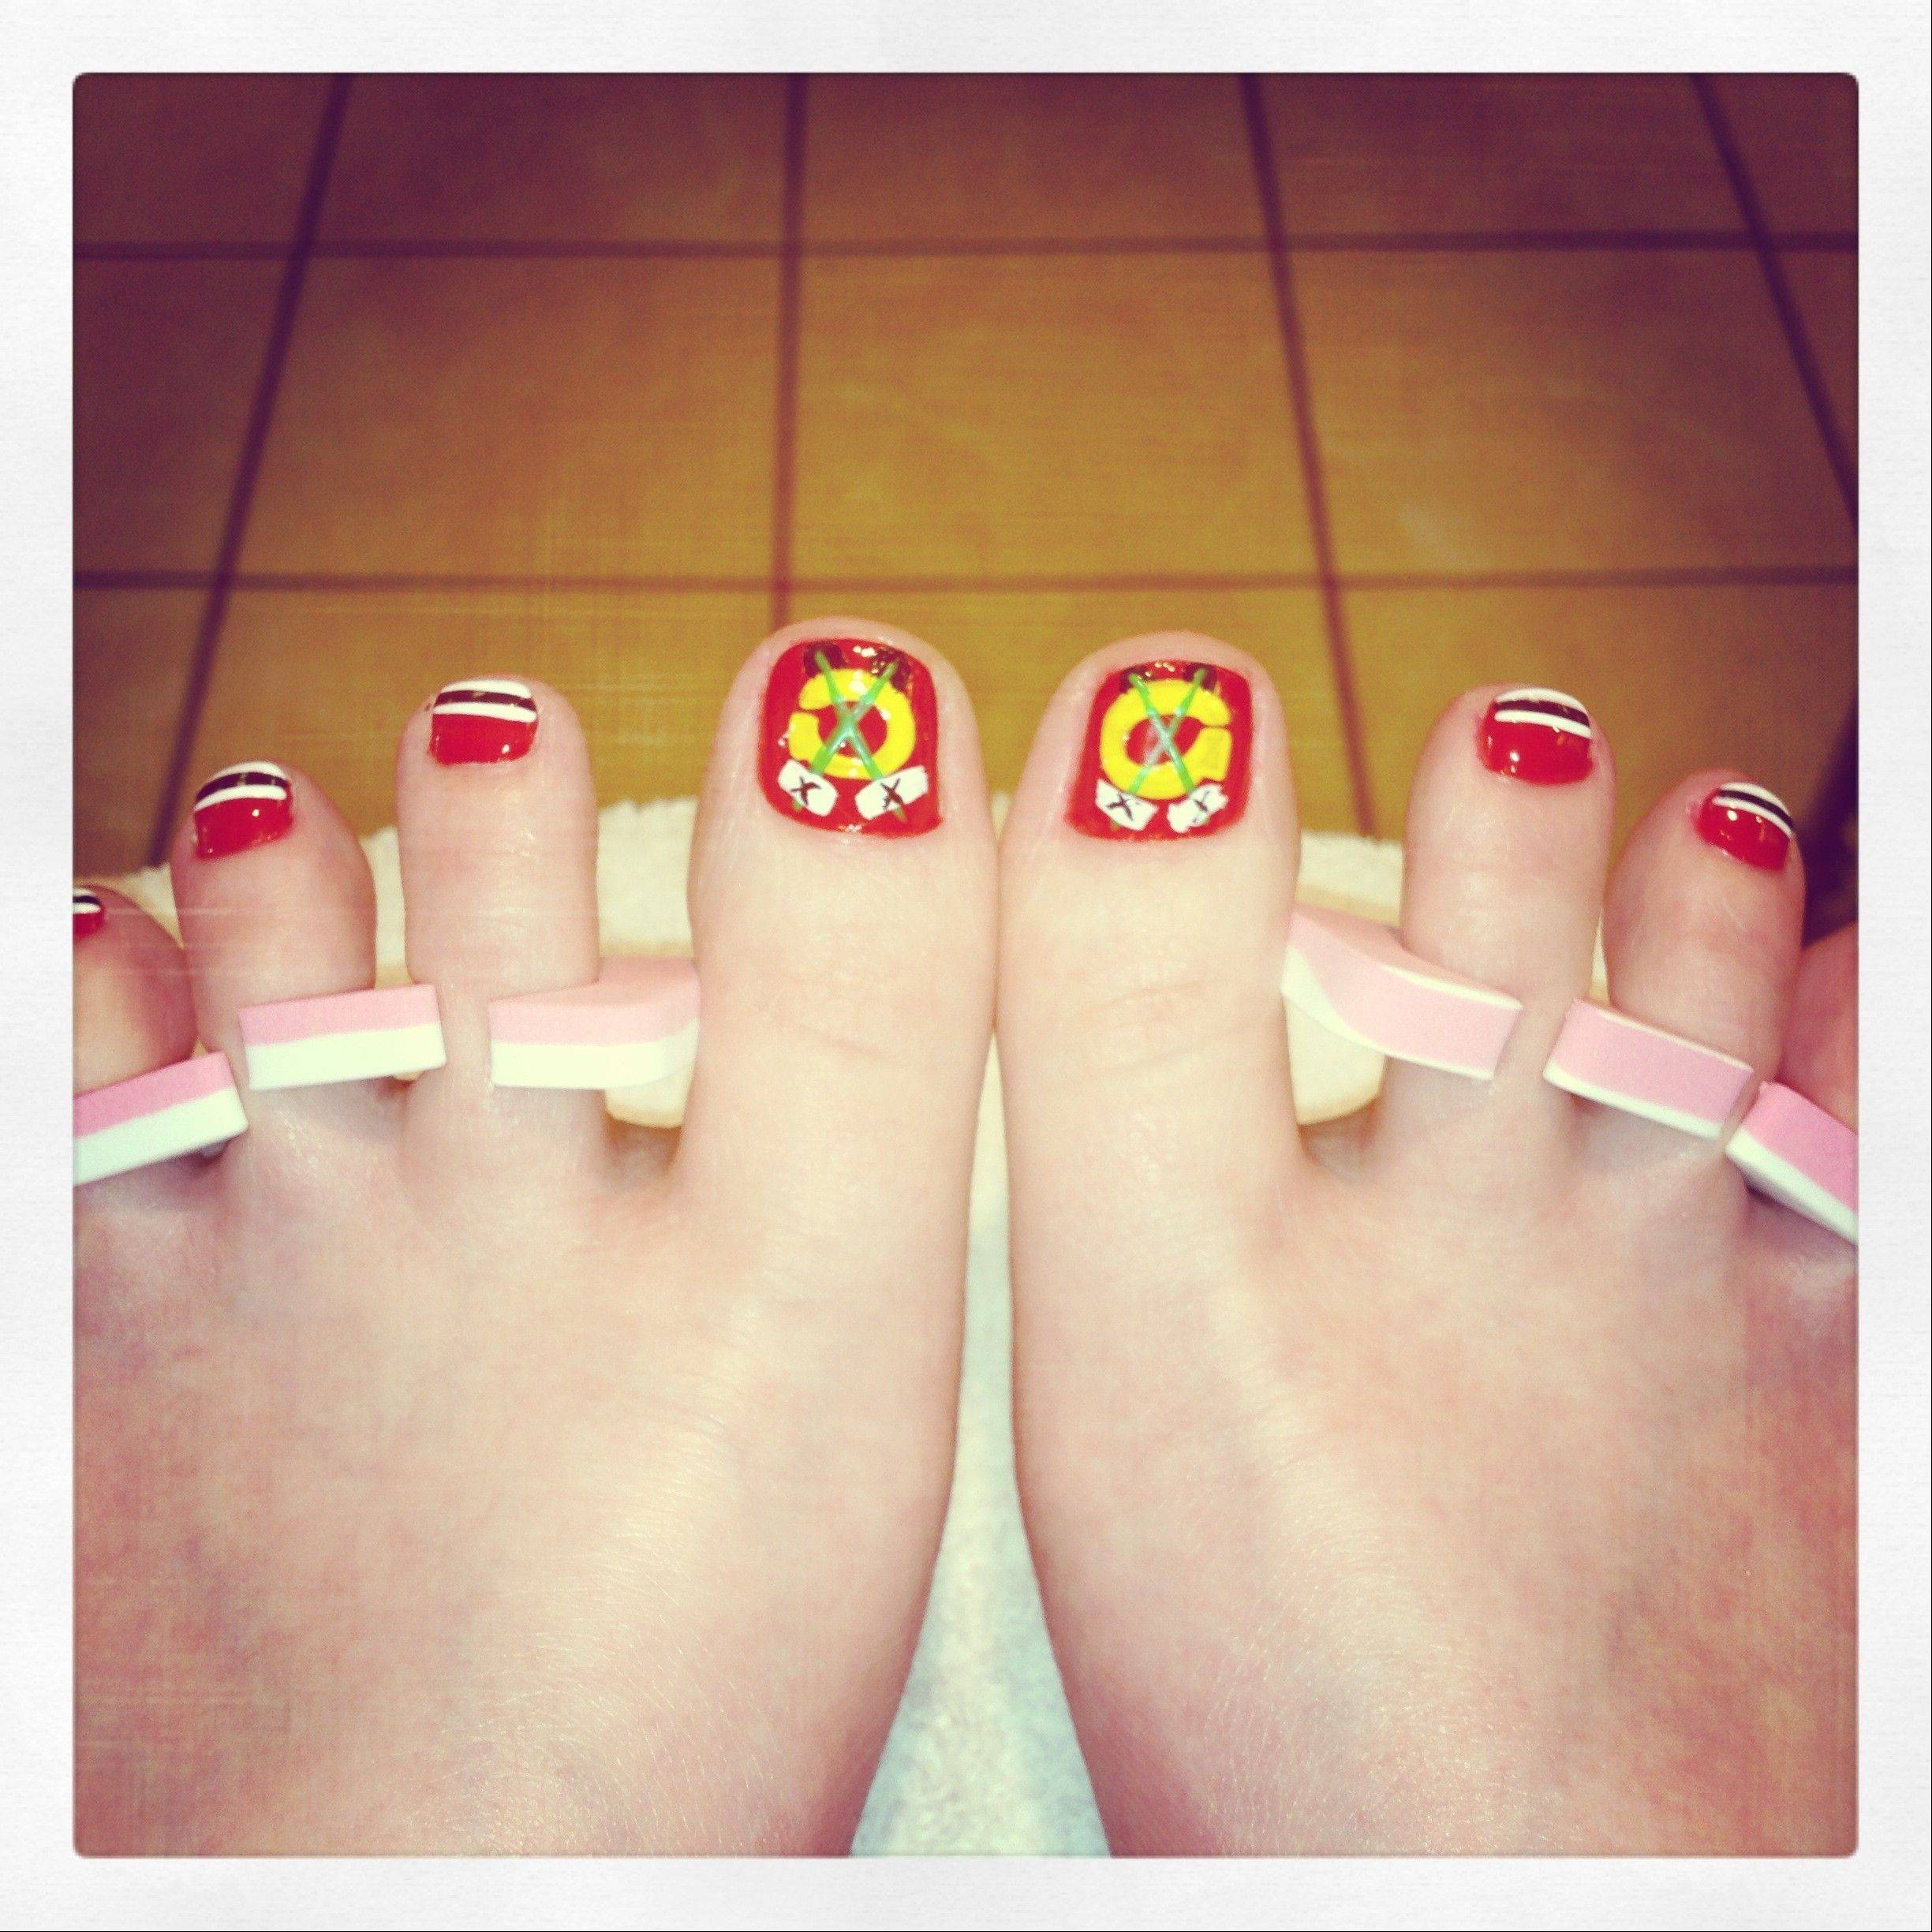 Stacey of Palatine gets her toes done in honor of the Blackhawks.